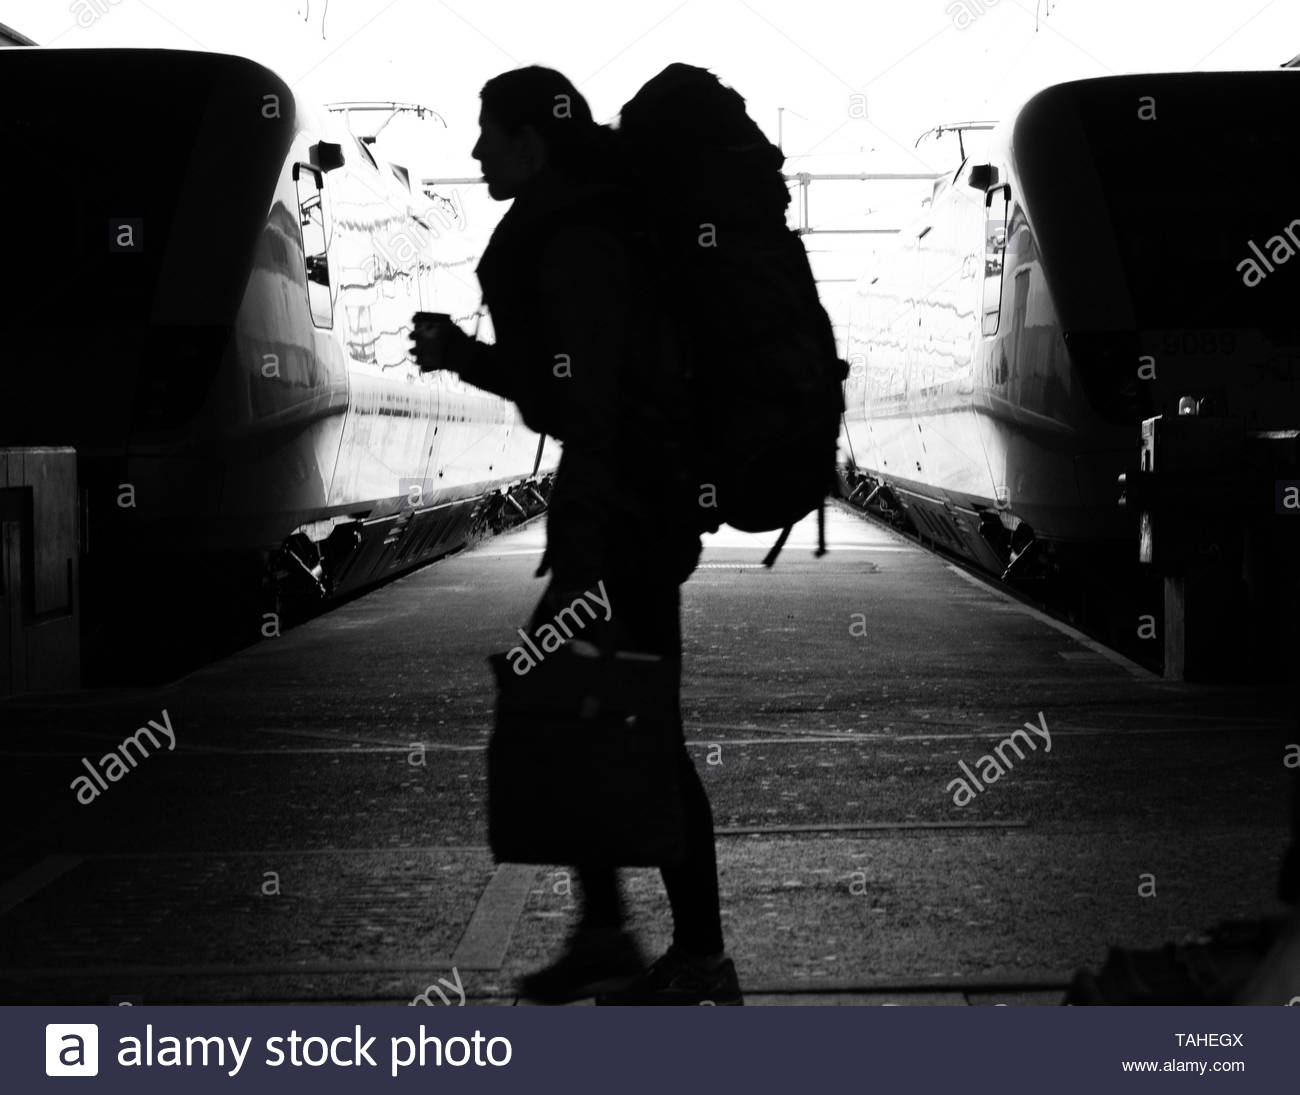 Traveler rushing with coffee in hand - Stock Image